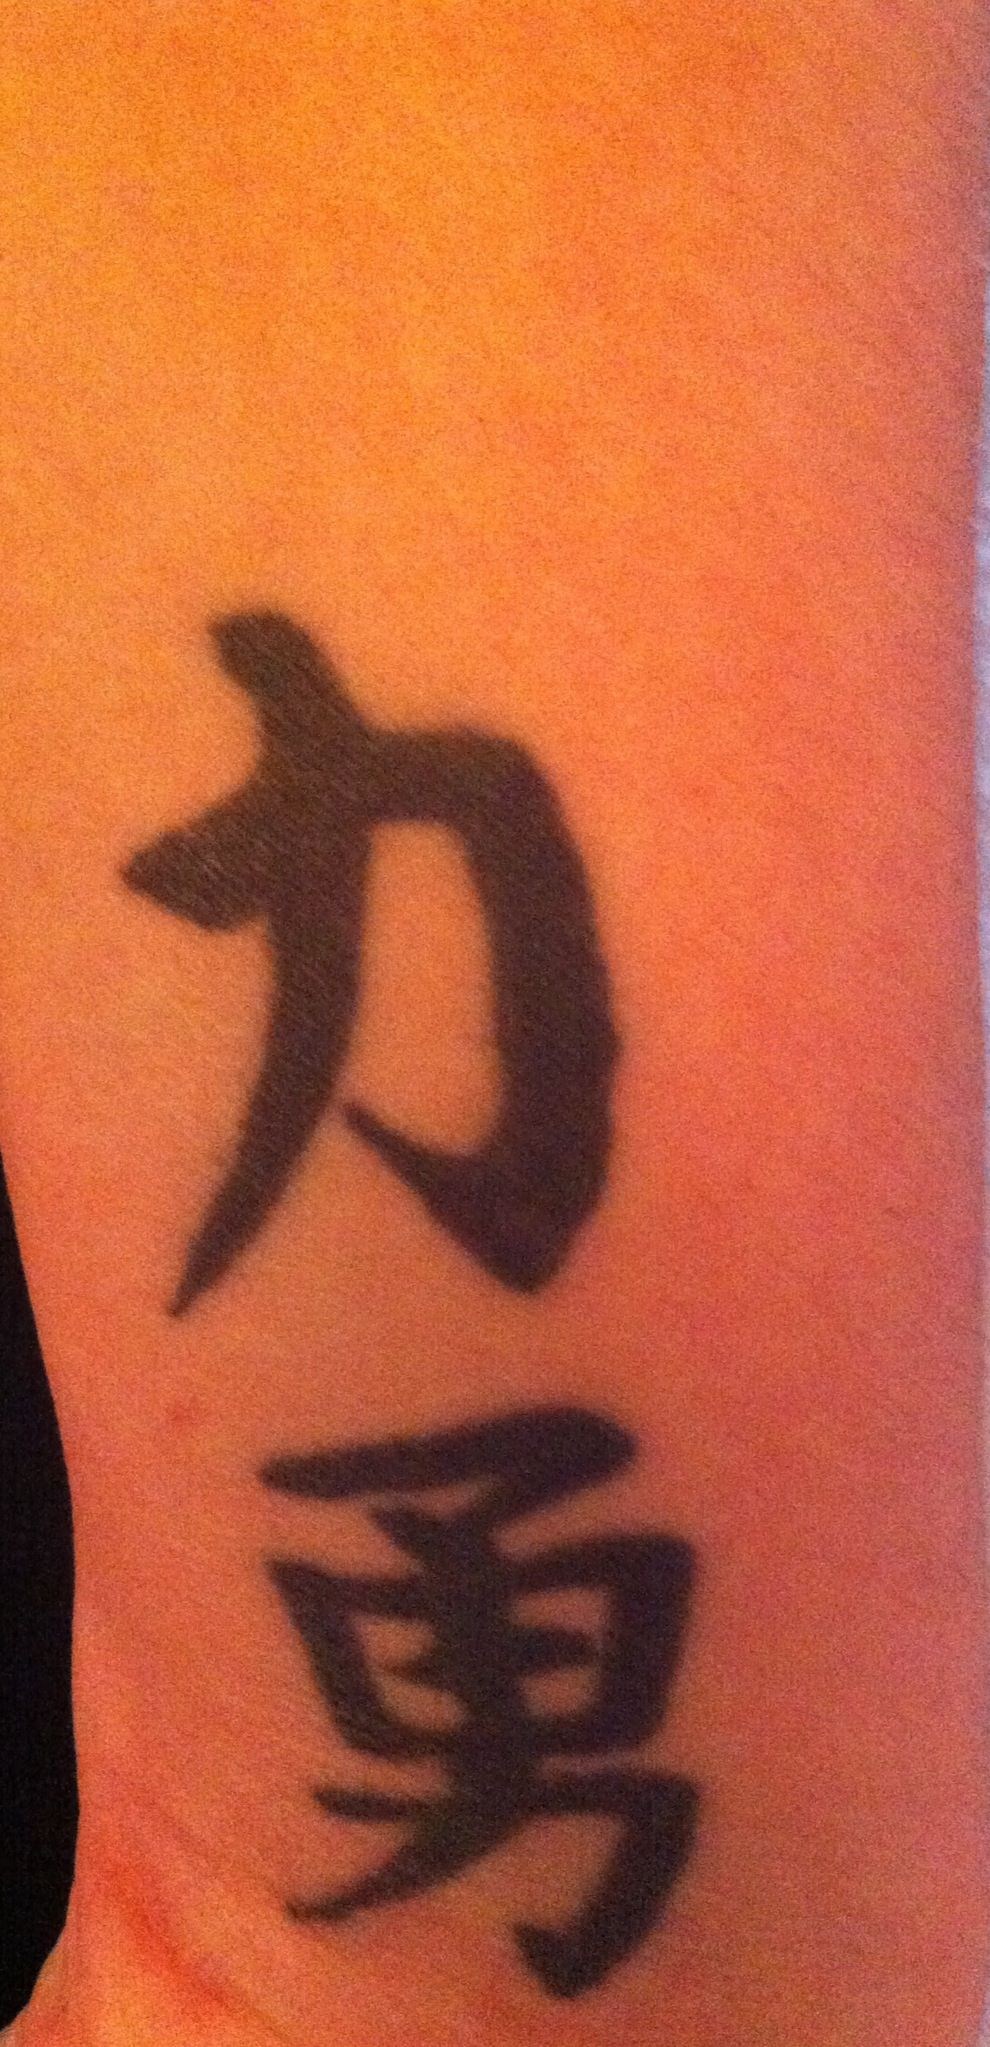 Chinese Animal Symbol For Strength Www Miifotos Com